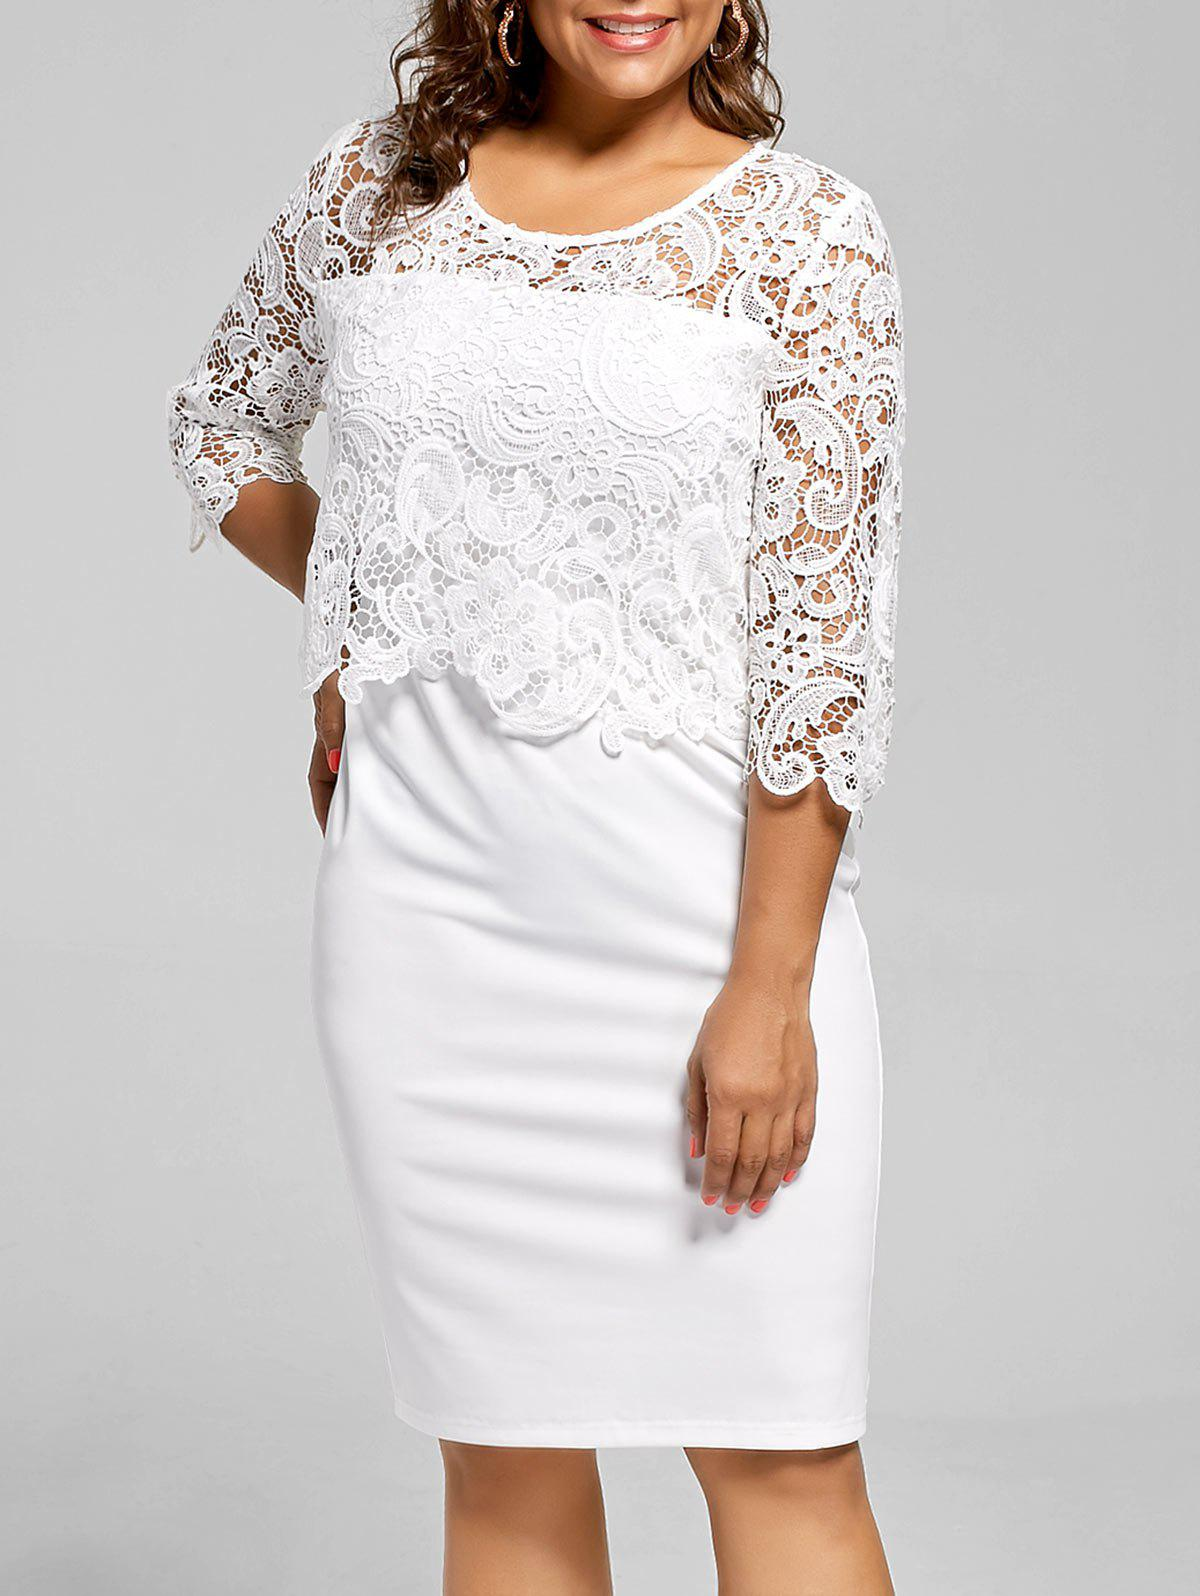 Lace Panel Knee Length Plus Size Bodycon DressWOMEN<br><br>Size: 5XL; Color: WHITE; Style: Casual; Material: Polyester,Spandex; Silhouette: Sheath; Dresses Length: Knee-Length; Neckline: Round Collar; Sleeve Length: 3/4 Length Sleeves; Embellishment: Lace; Pattern Type: Solid; With Belt: No; Season: Fall,Spring,Summer; Weight: 0.3500kg; Package Contents: 1 x Dress;